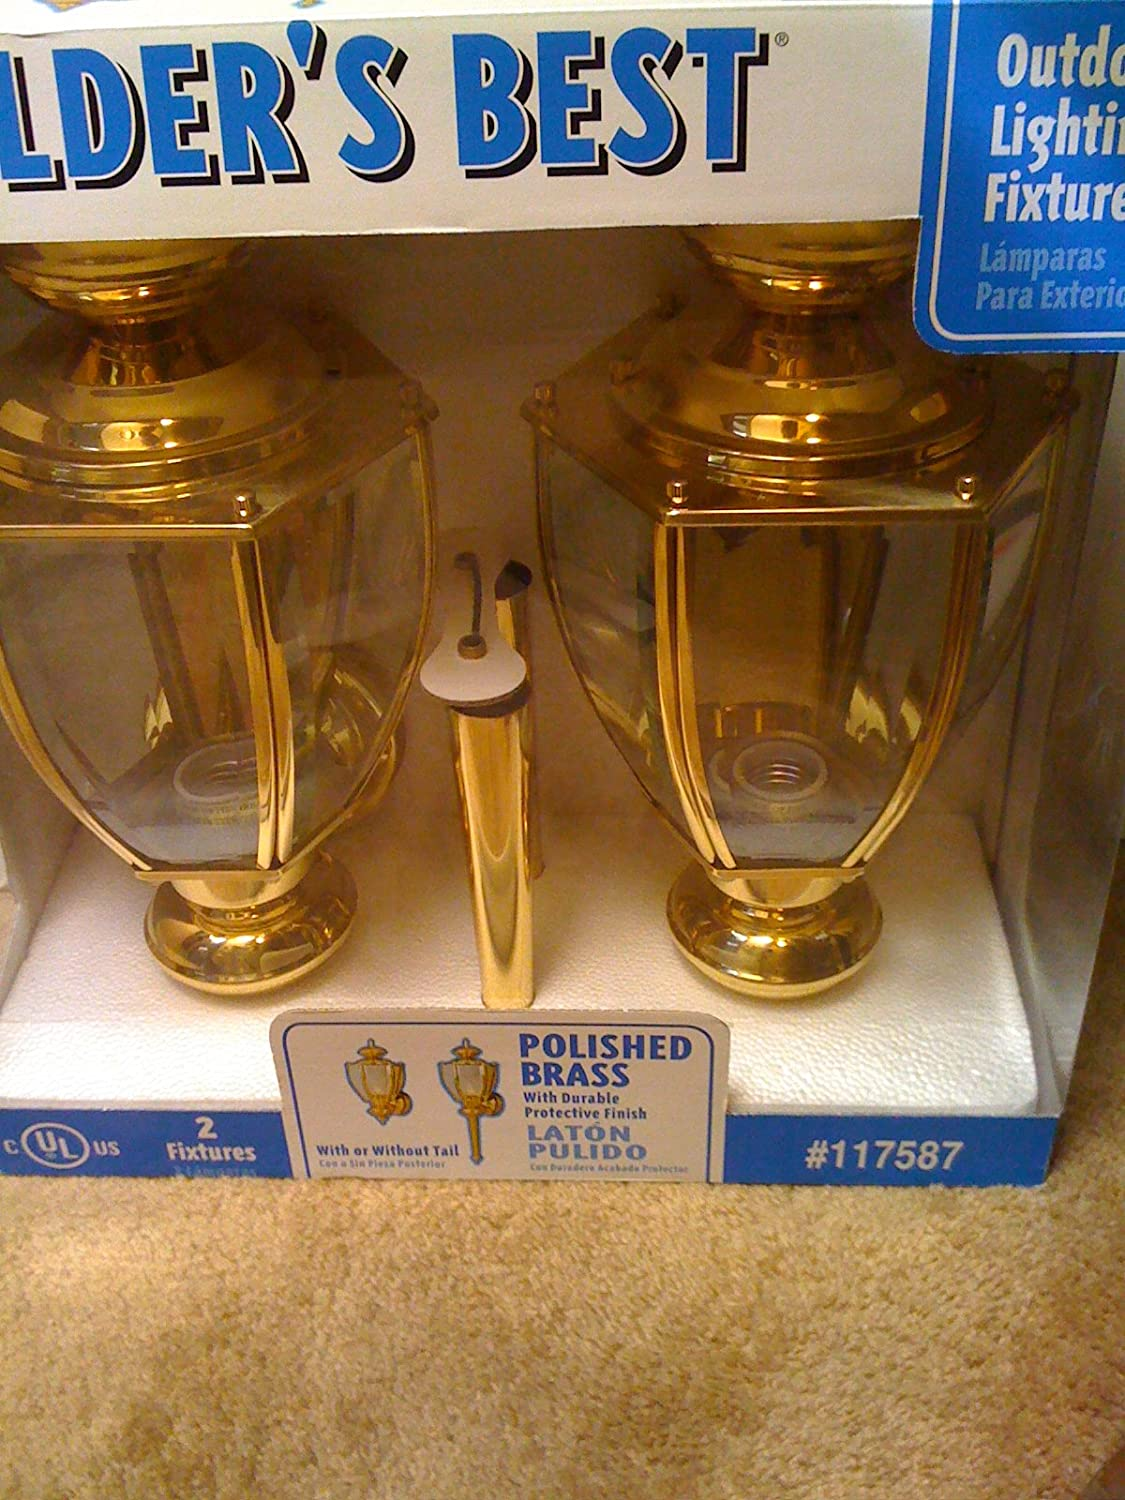 Set of 2 Polished Brass Outdoor Wall Lanterns